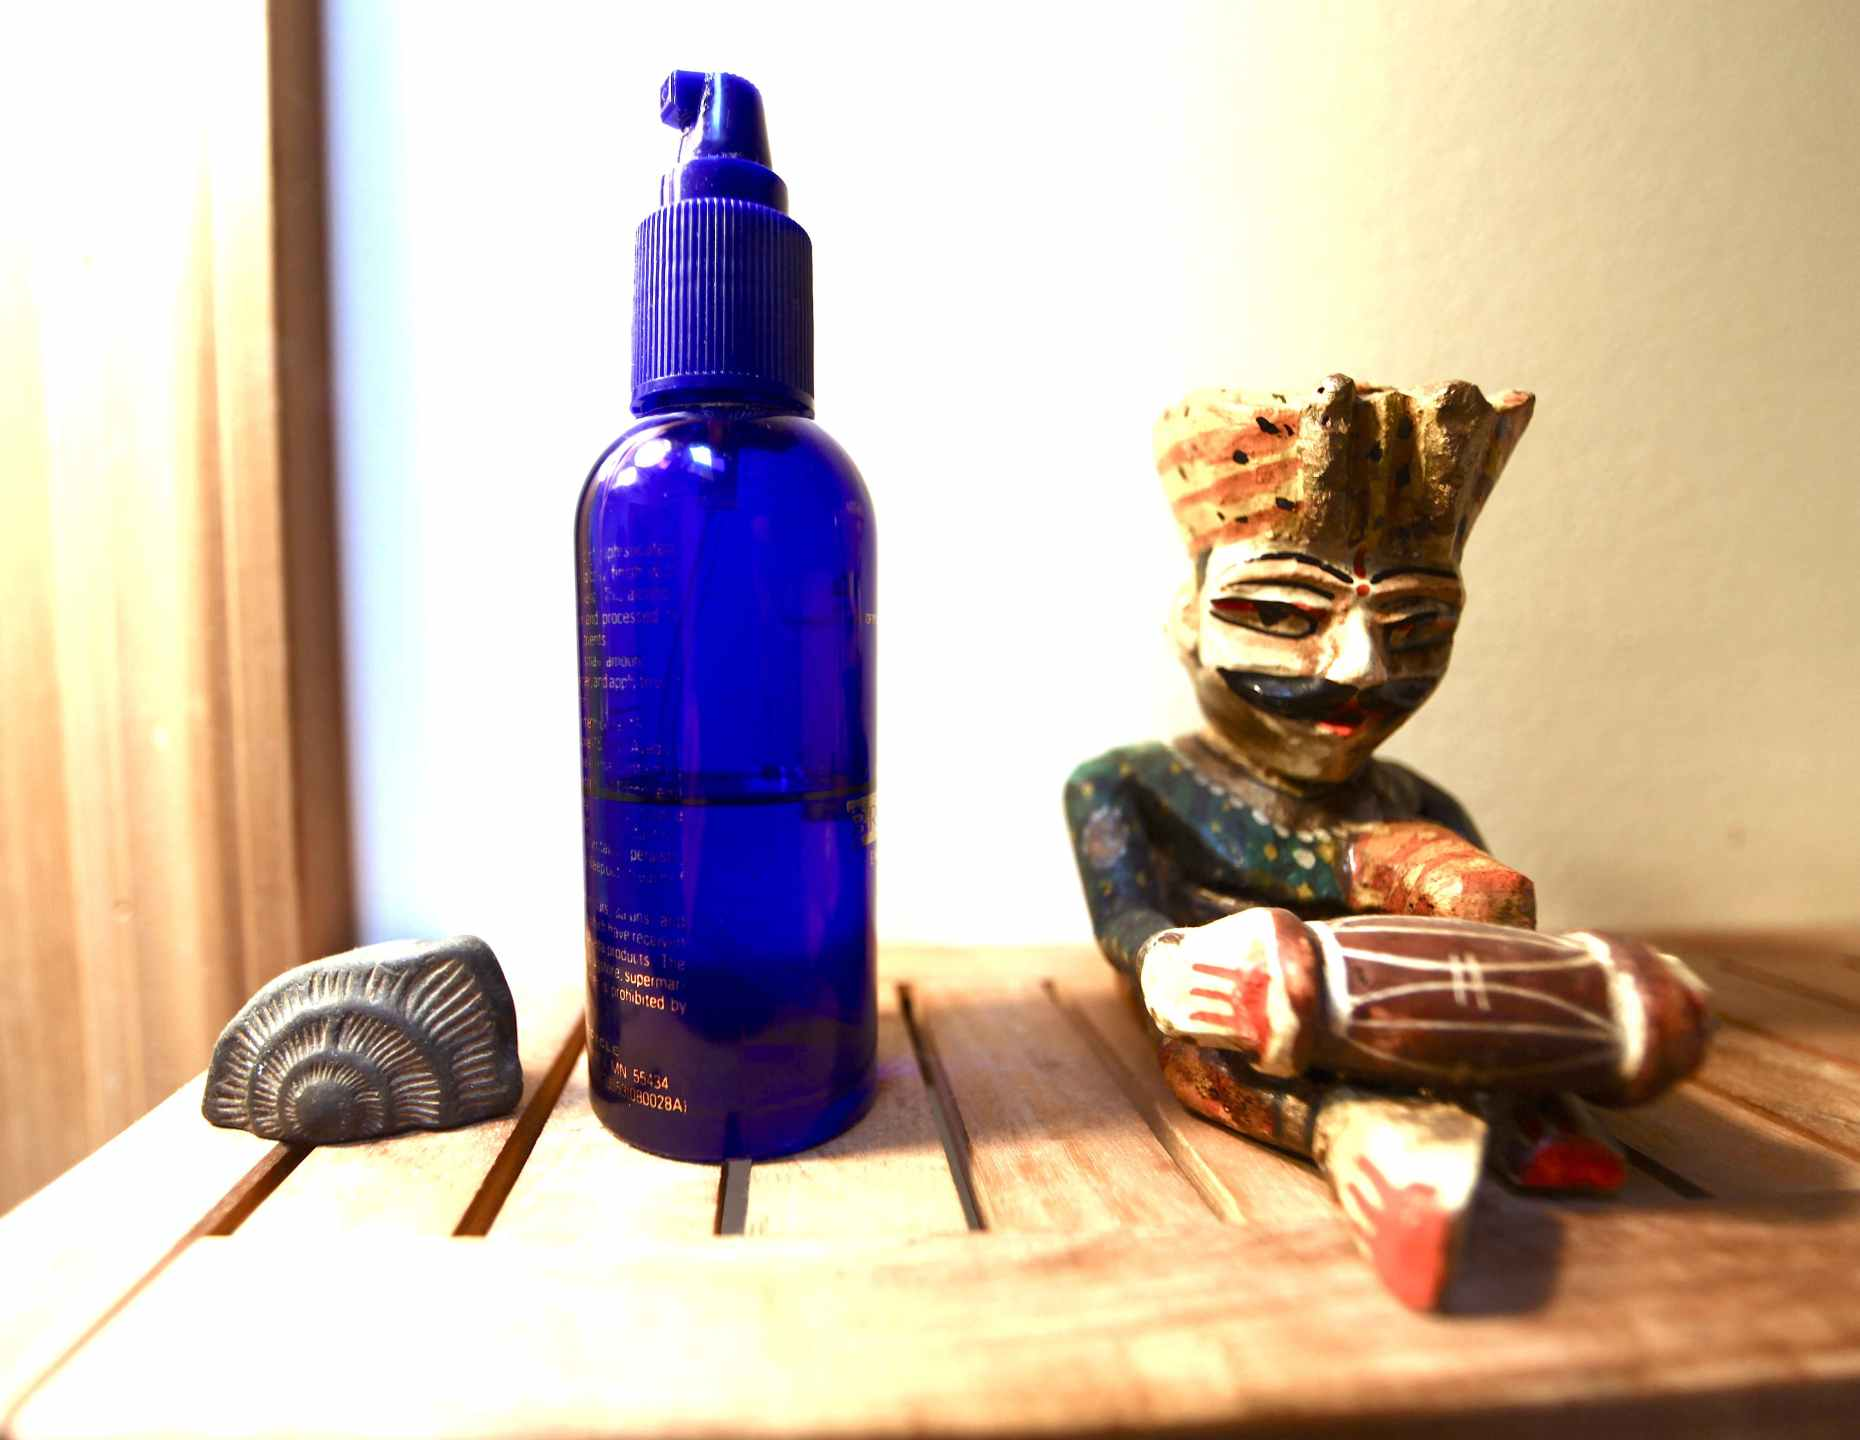 Our detangler bottle is an old Aveda bottle. Photo © Liesl Clark